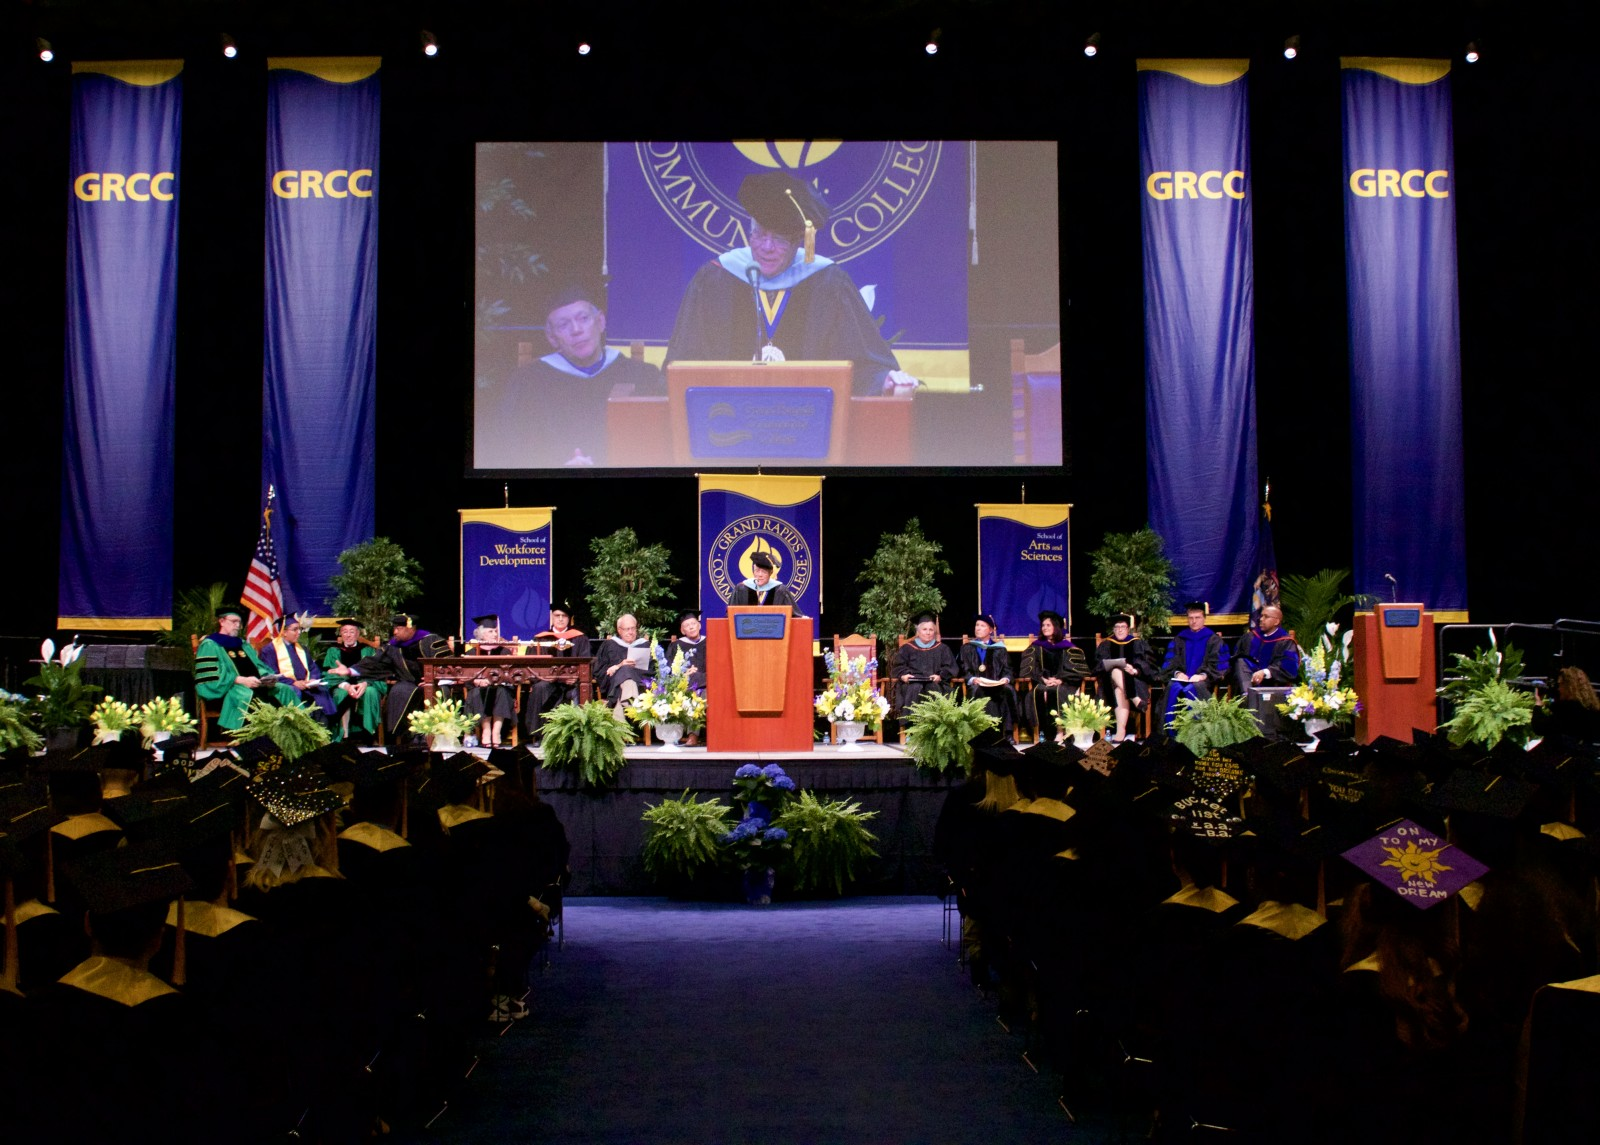 grcc hosts 100th commencement ceremony